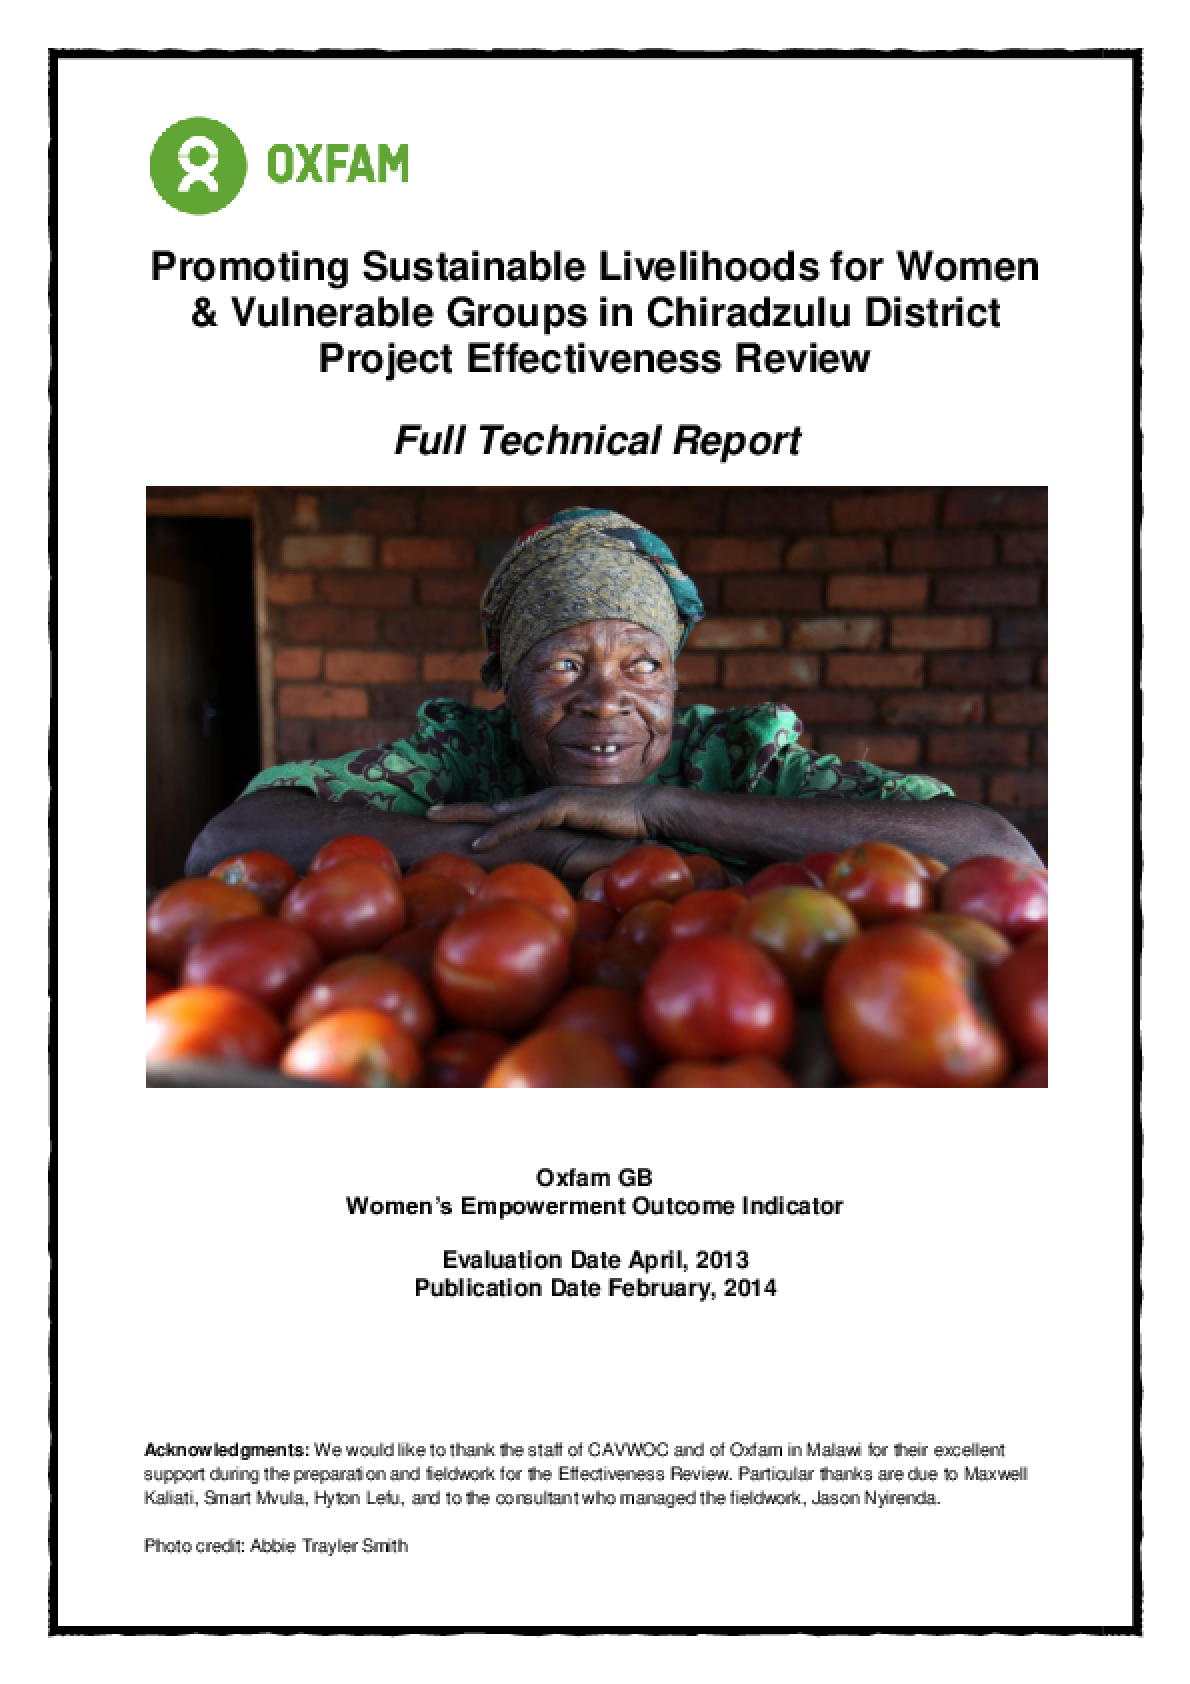 Effectiveness Review: Promoting Sustainable Livelihoods for Women and Vulnerable Groups in Chiradzulu District, Malawi